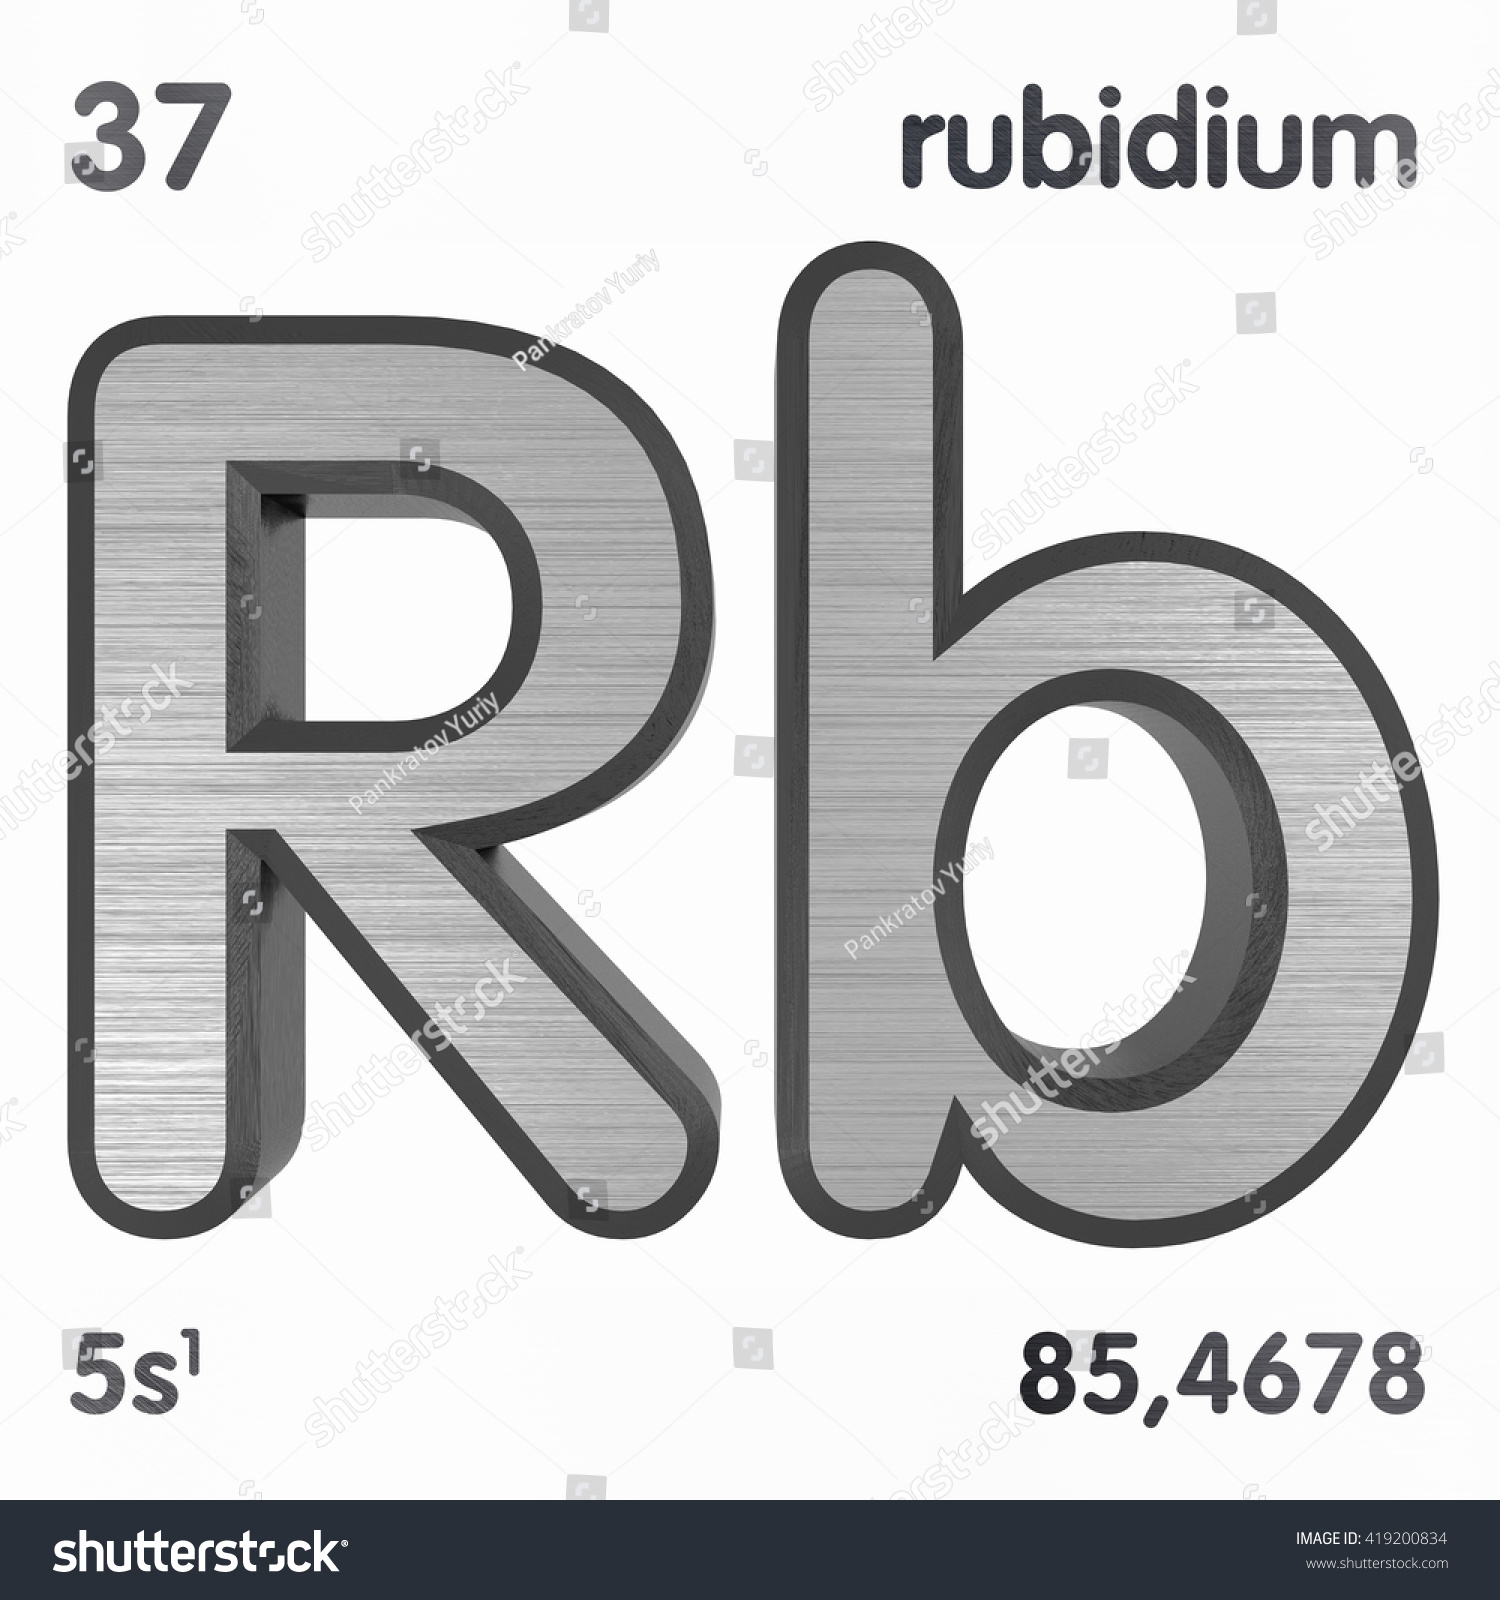 Element 85 periodic table choice image periodic table images periodic table of elements lead images periodic table images periodic table elements rubidium 3d title stock gamestrikefo Gallery